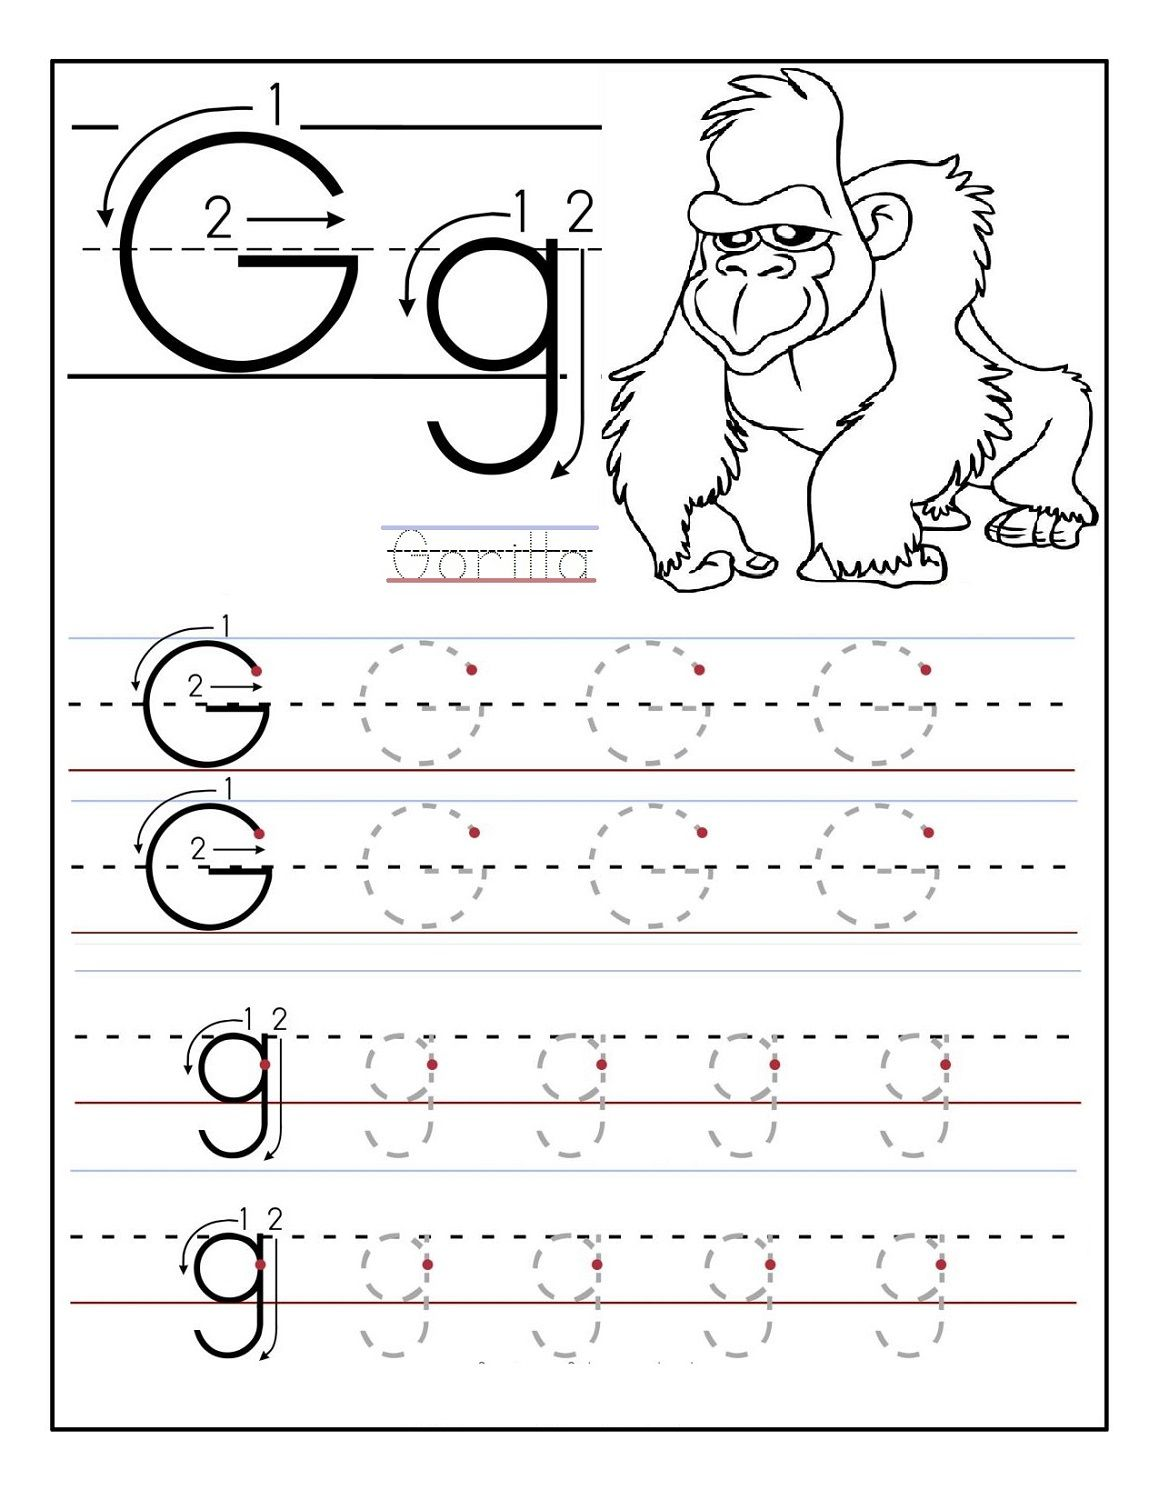 Free Traceable Alphabet Worksheets Gorilla